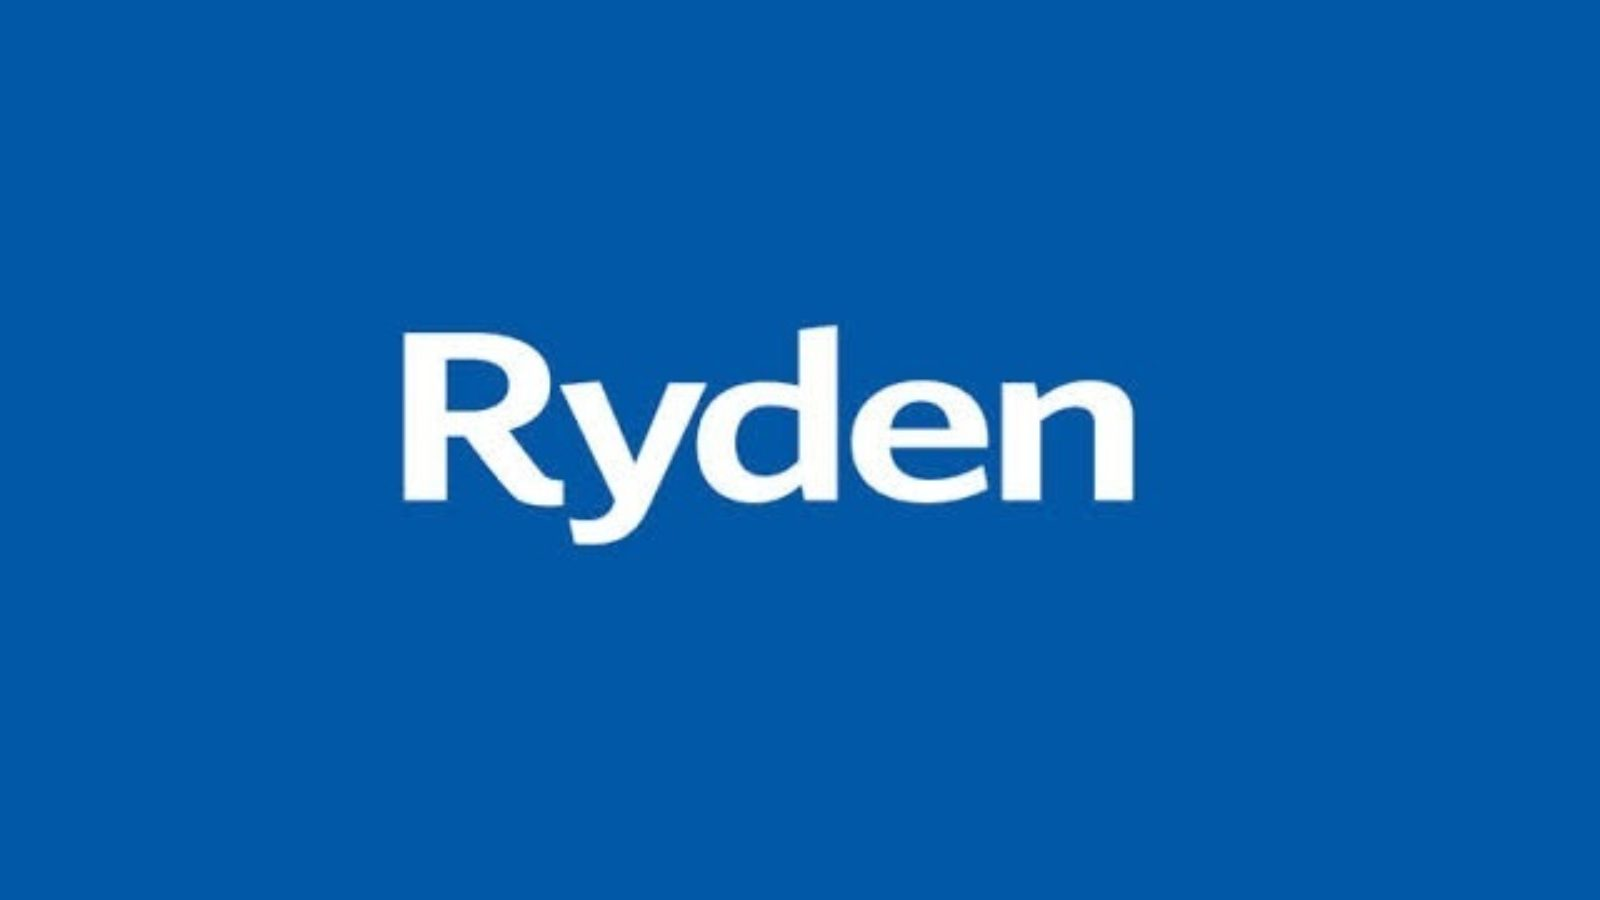 Results of Ryden's 86th Scottish Property Review released